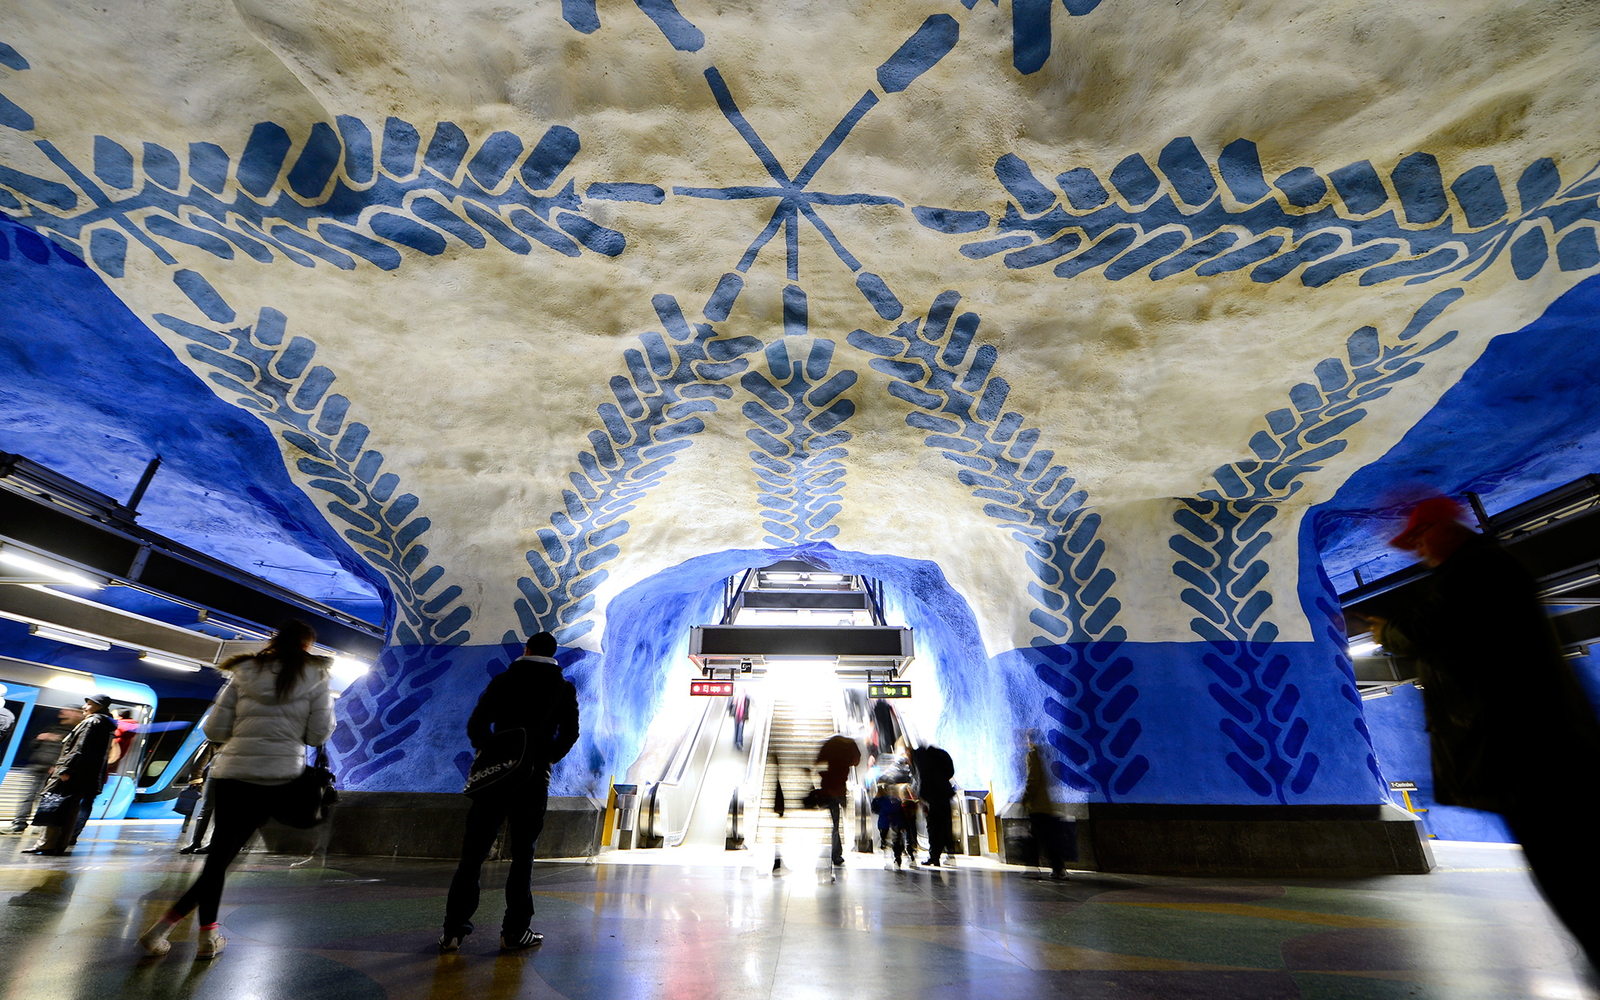 10 Eye-Catching Metro Stations Worth a Stop